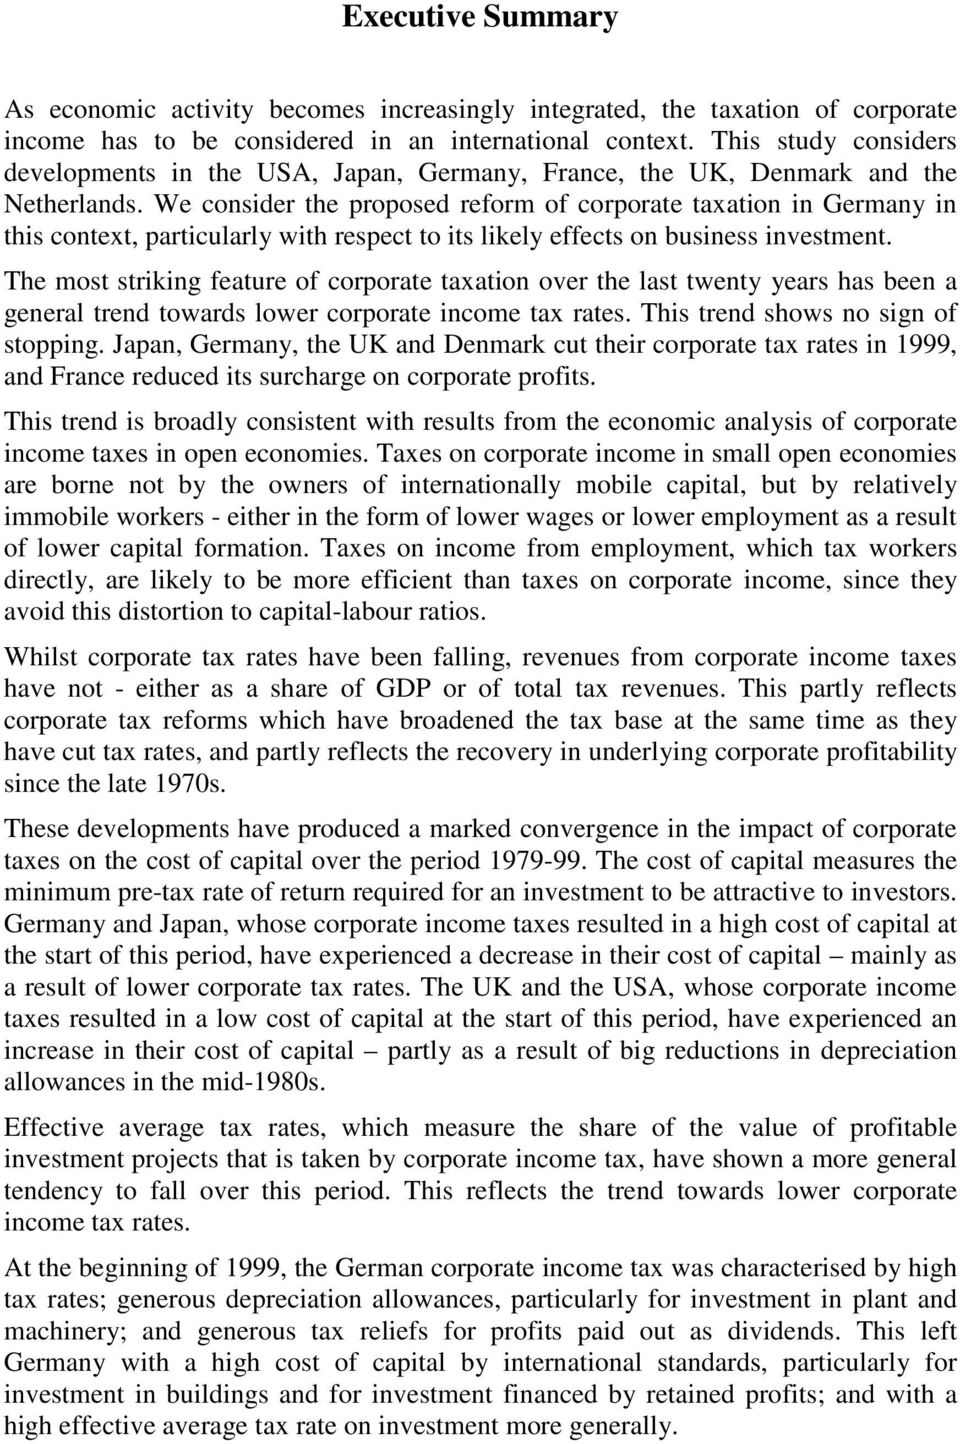 We consider the proposed reform of corporate taxation in Germany in this context, particularly with respect to its likely effects on business investment.